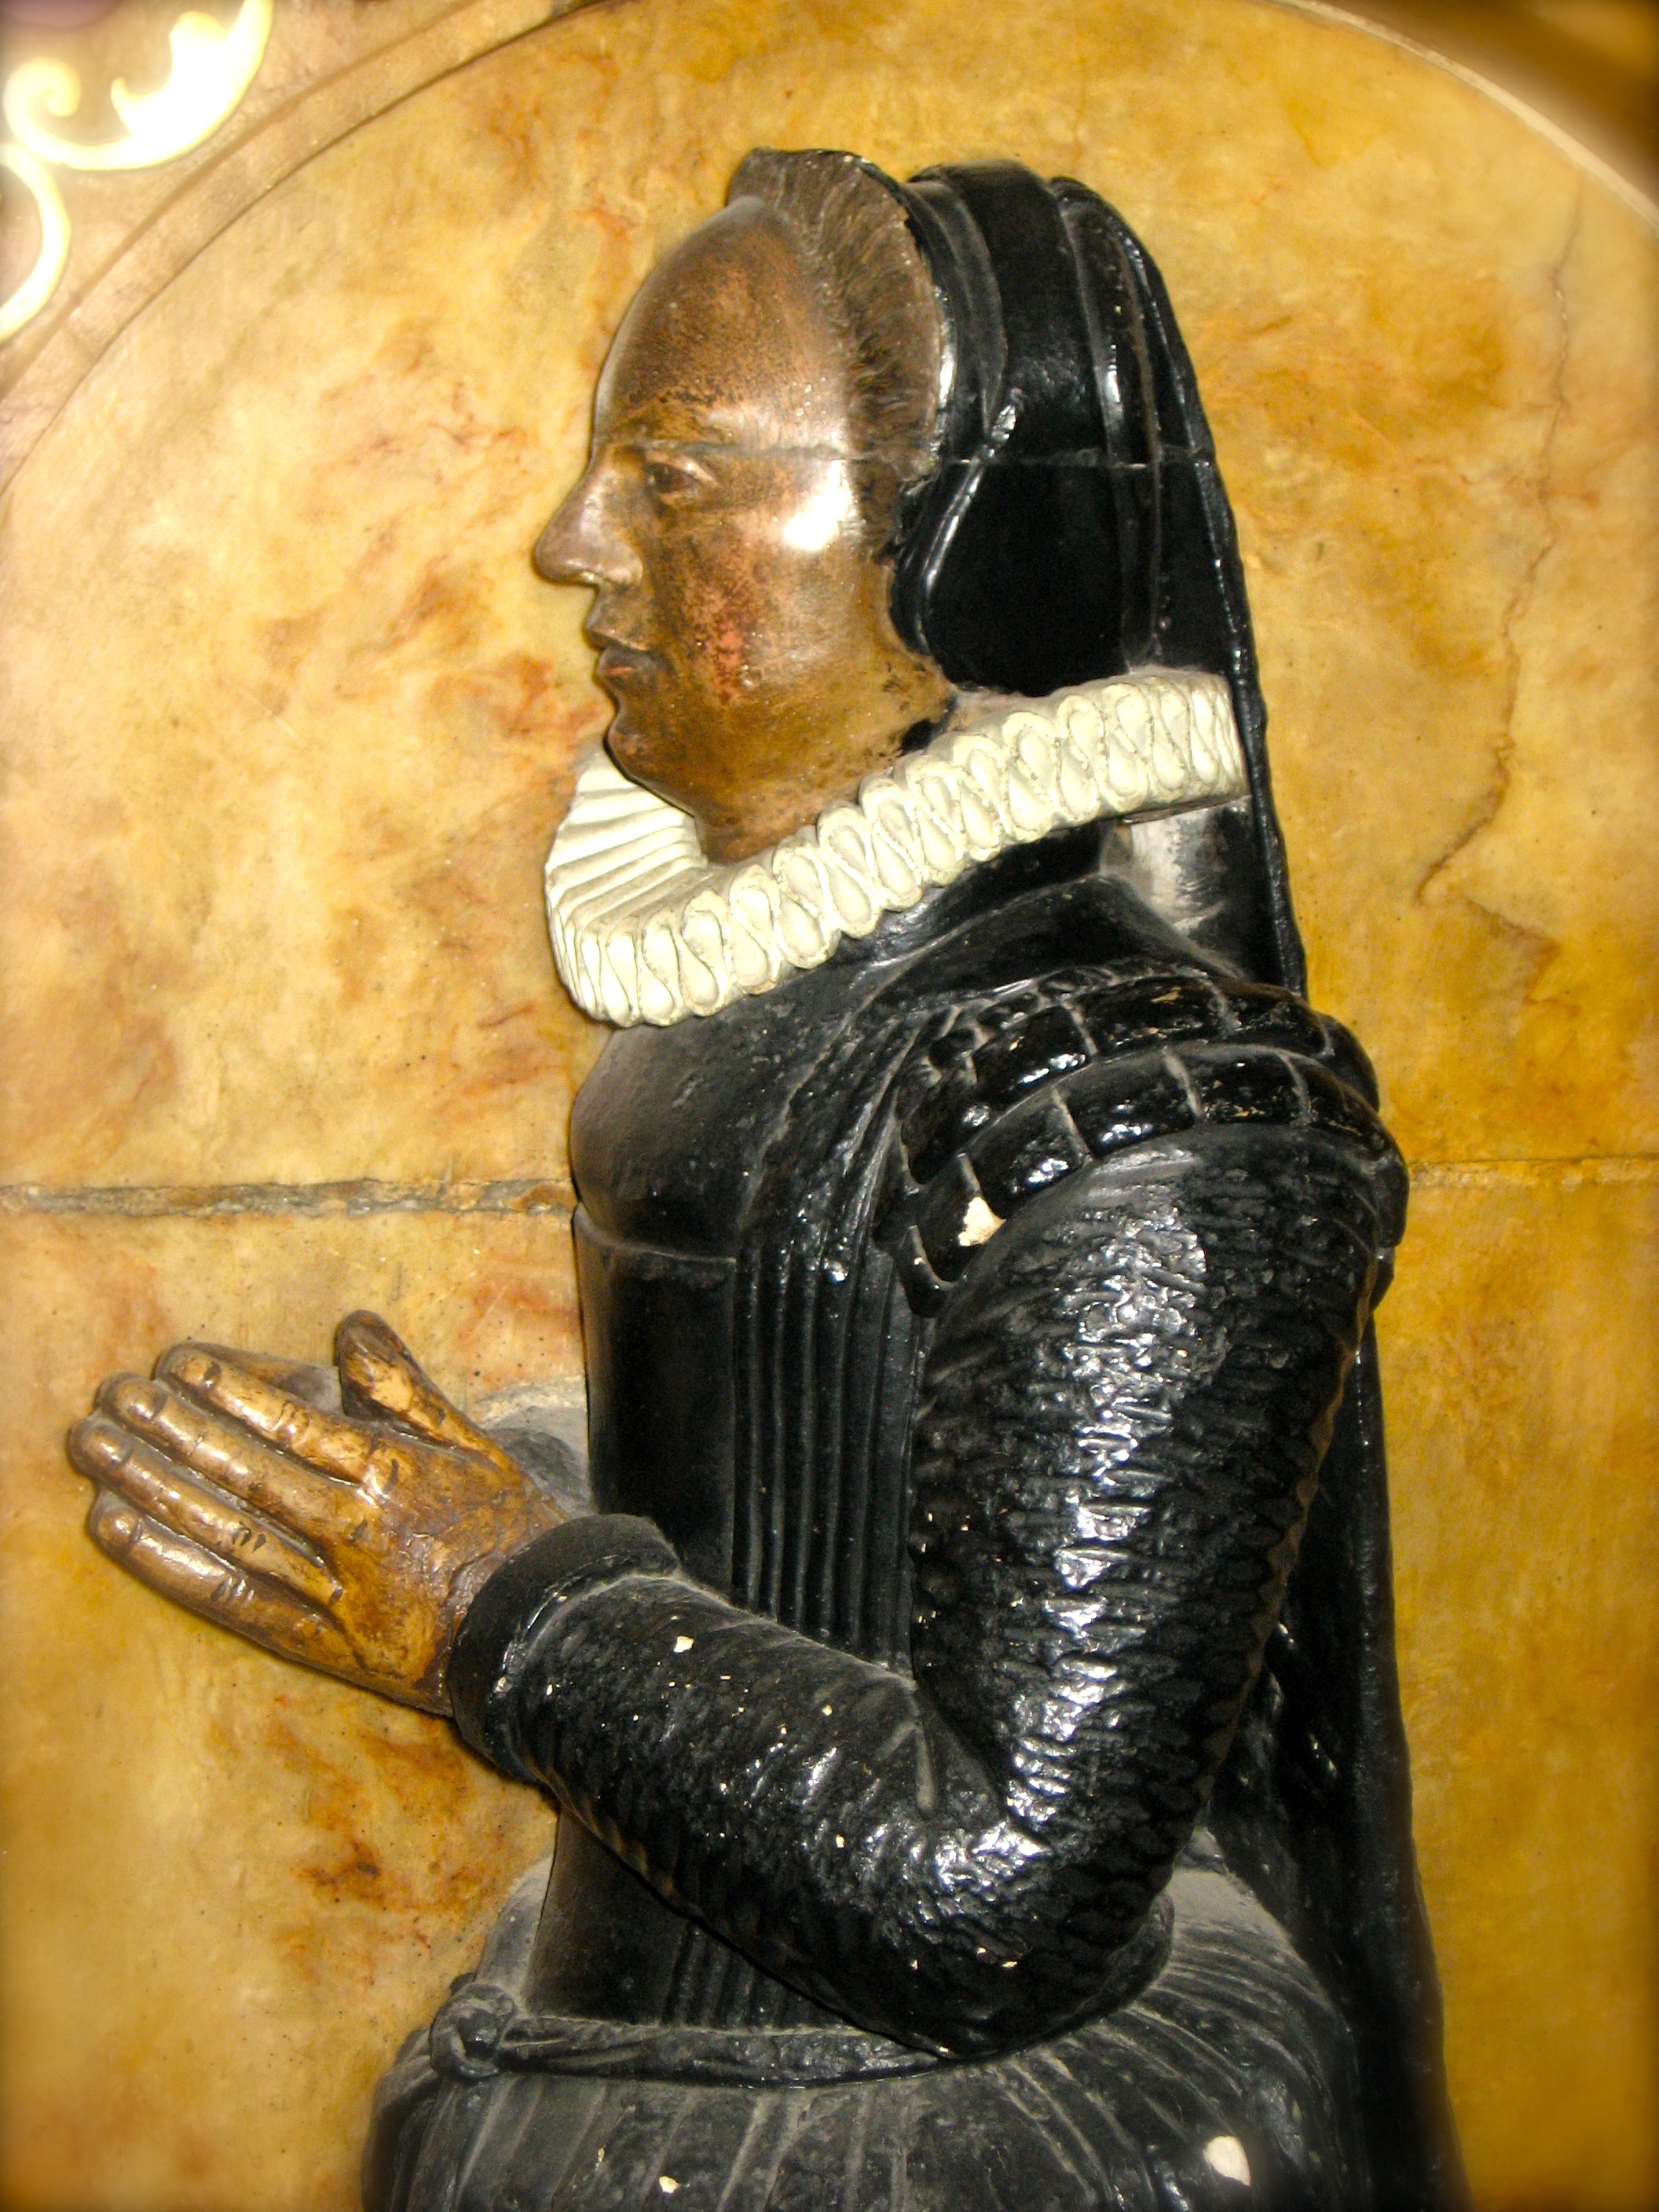 date unkown - Tomb Effigy at York Minster